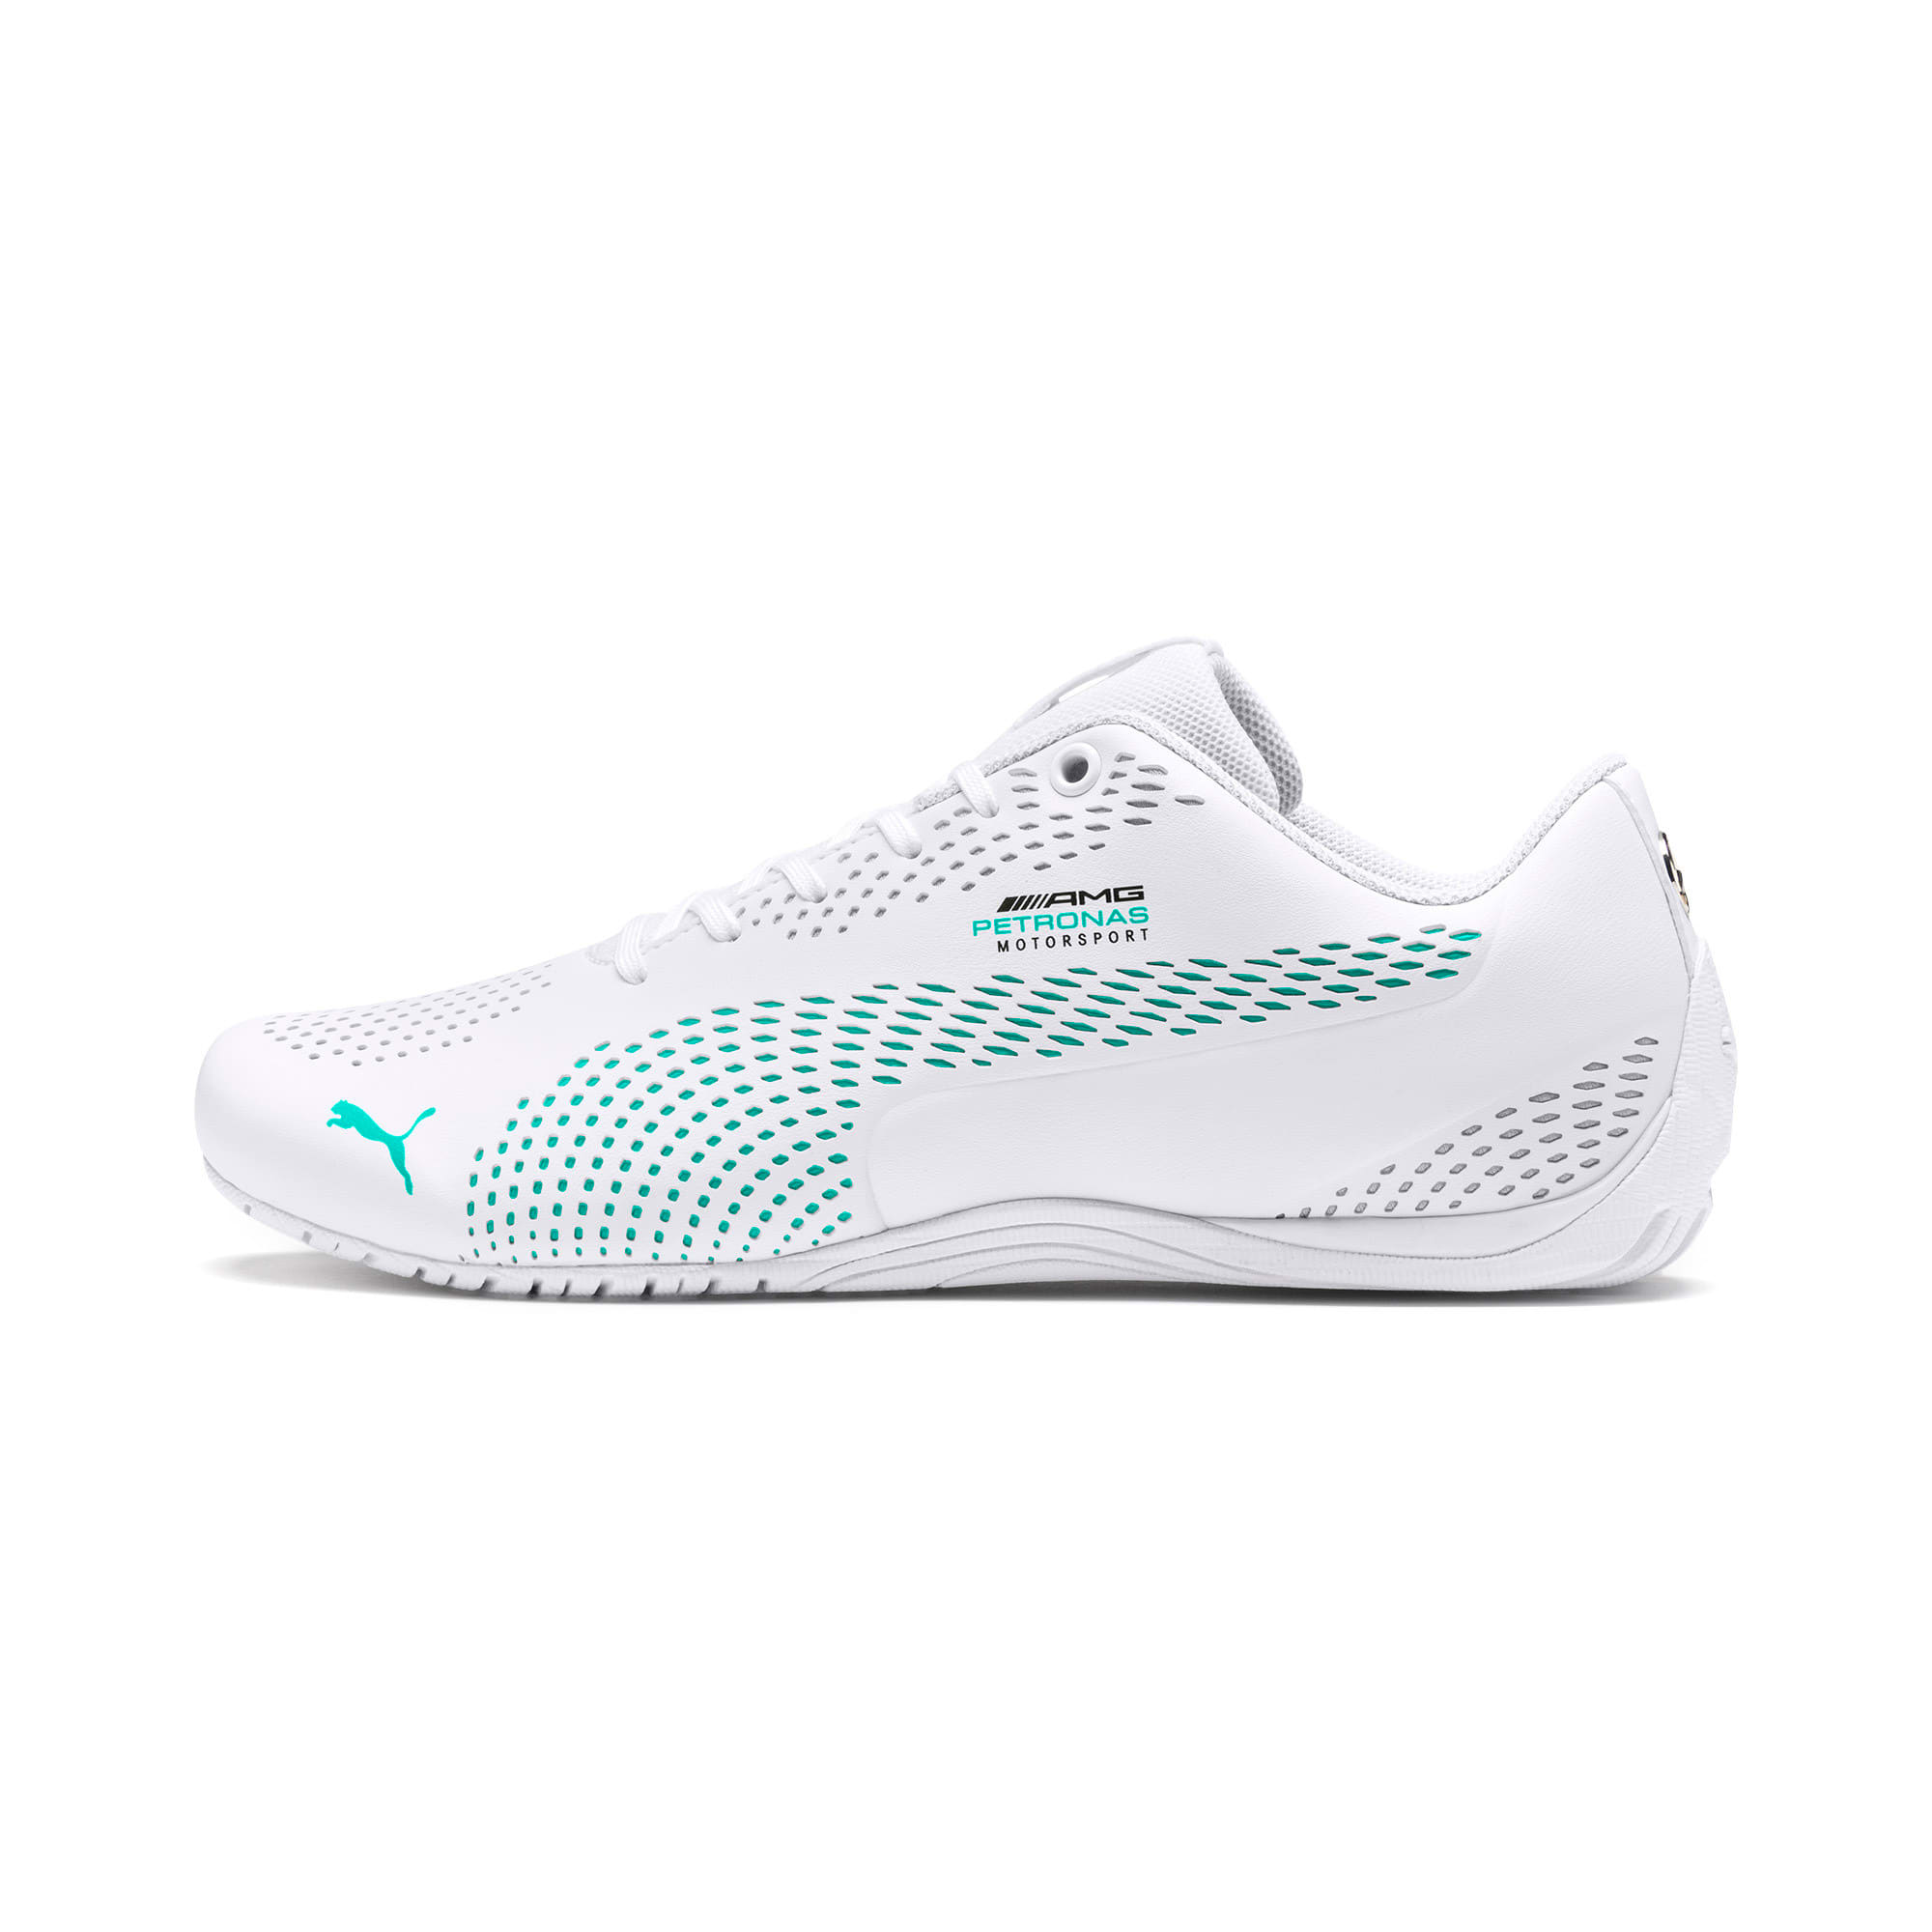 Thumbnail 1 of Mercedes AMG Petronas Drift Cat 5 Ultra II Trainers, Puma White-Spectra Green, medium